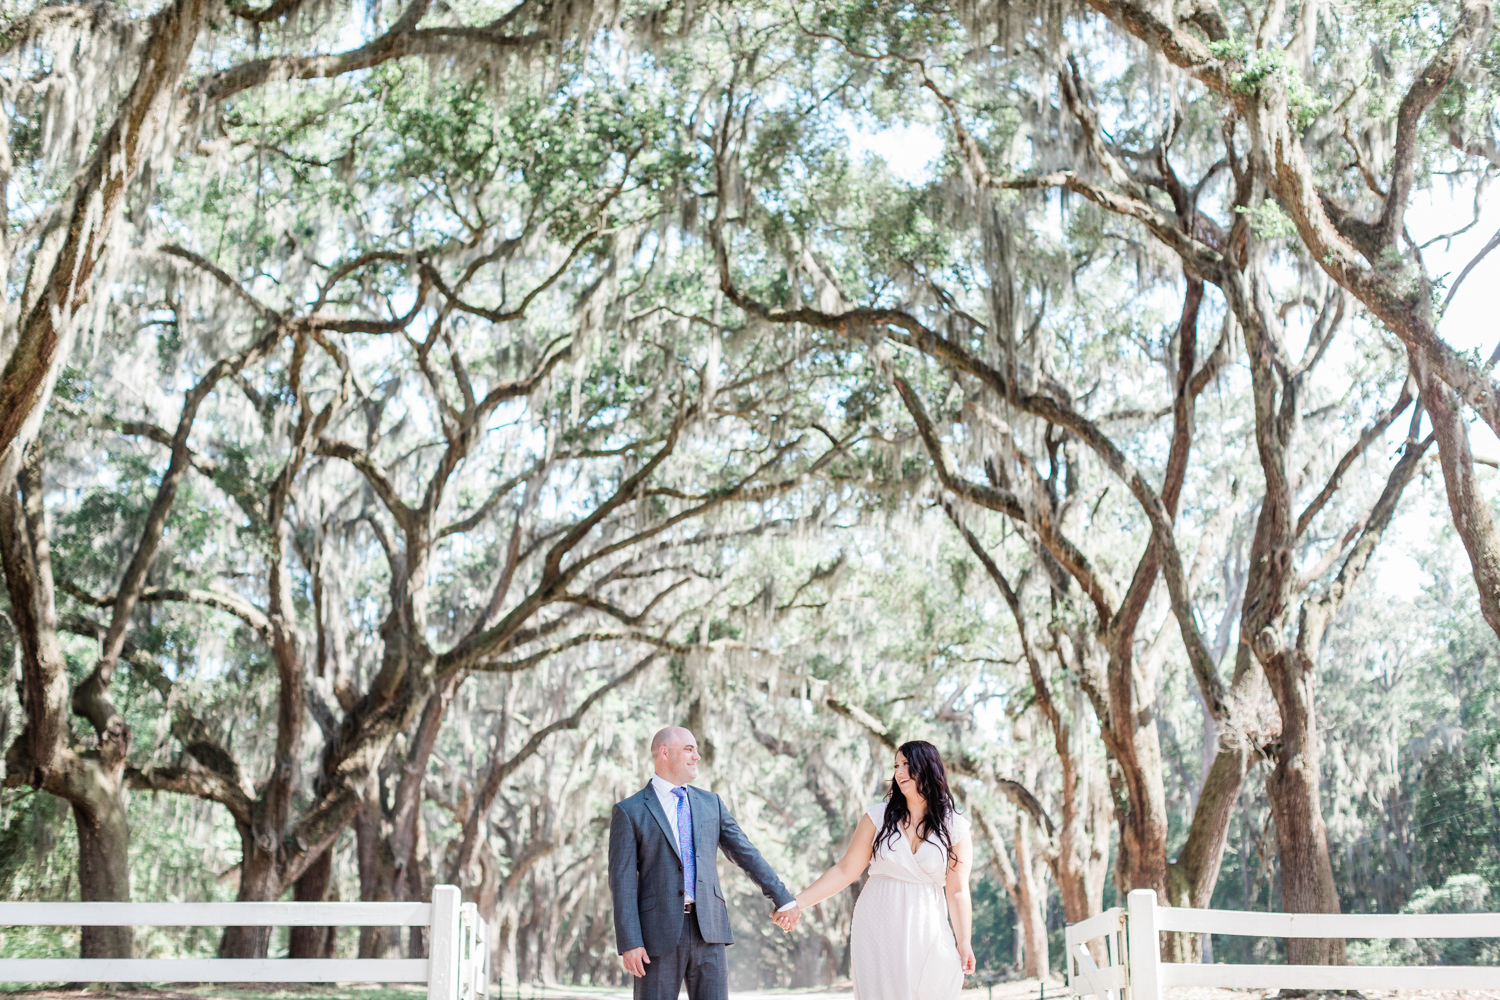 AptBPhoto_Savannah_Wedding_Photographer002.jpg